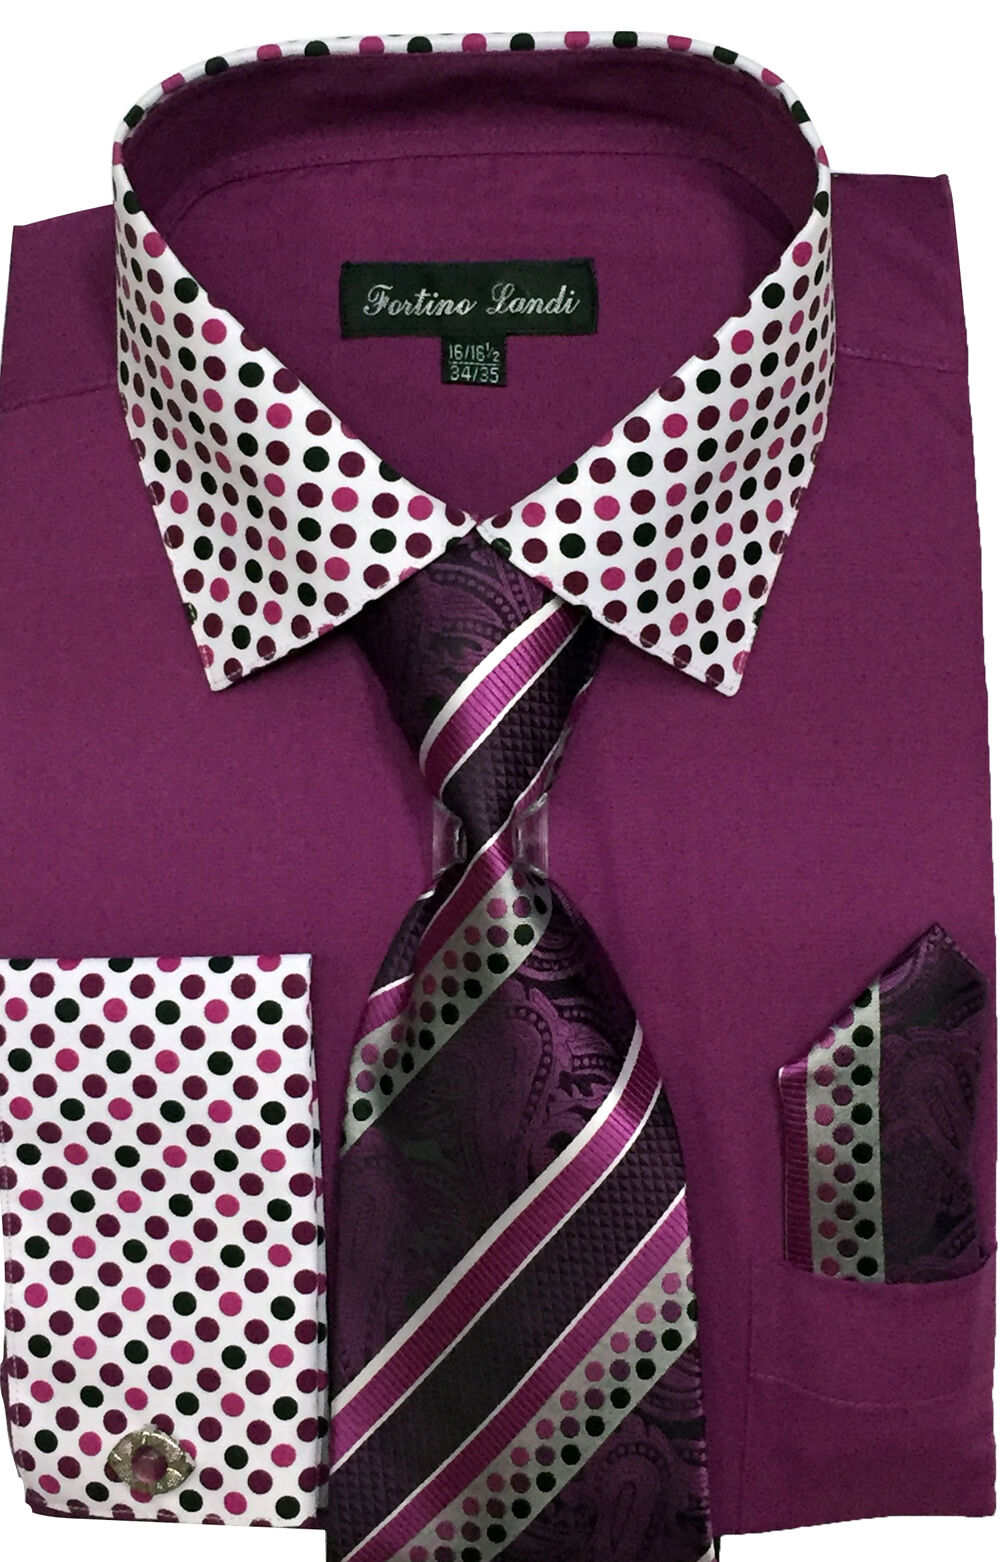 Fortino Landi Shirt FL630-Purple - Church Suits For Less